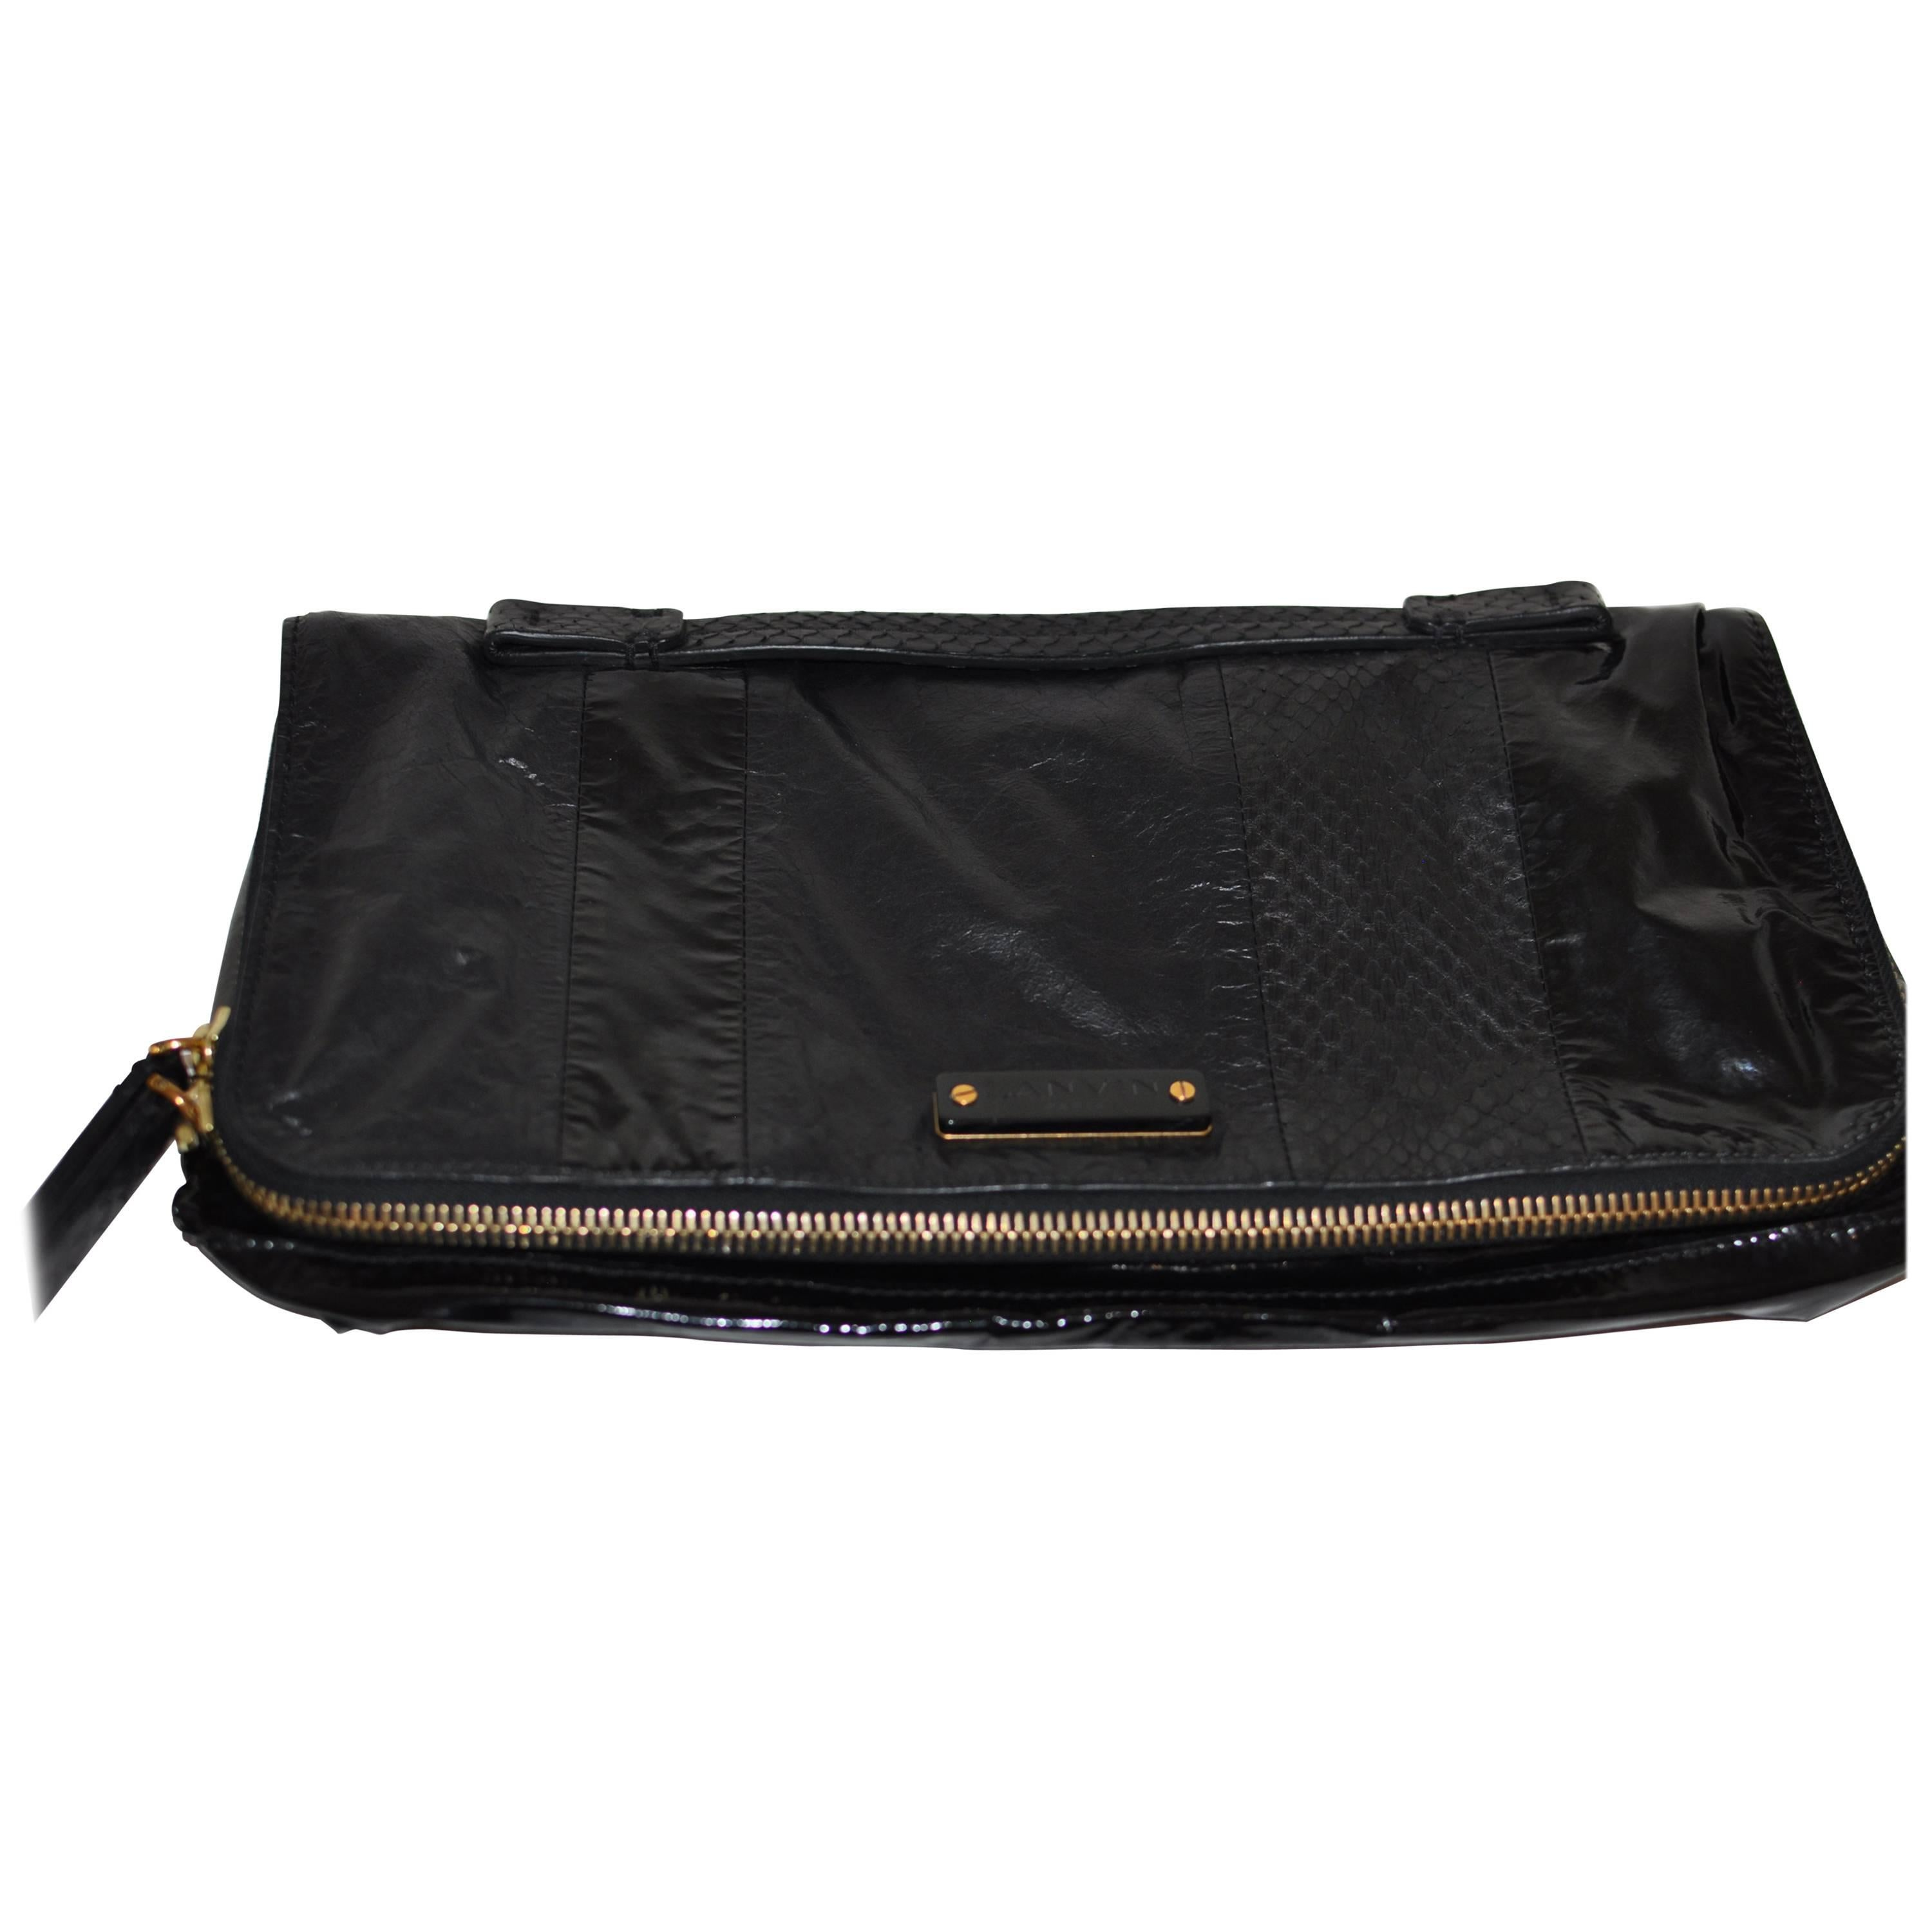 Alber Elbaz Lanvin Black Patent Leather And Reptile Foldover Flap Clutch With Dust Bag 41402 cjIjciSWS